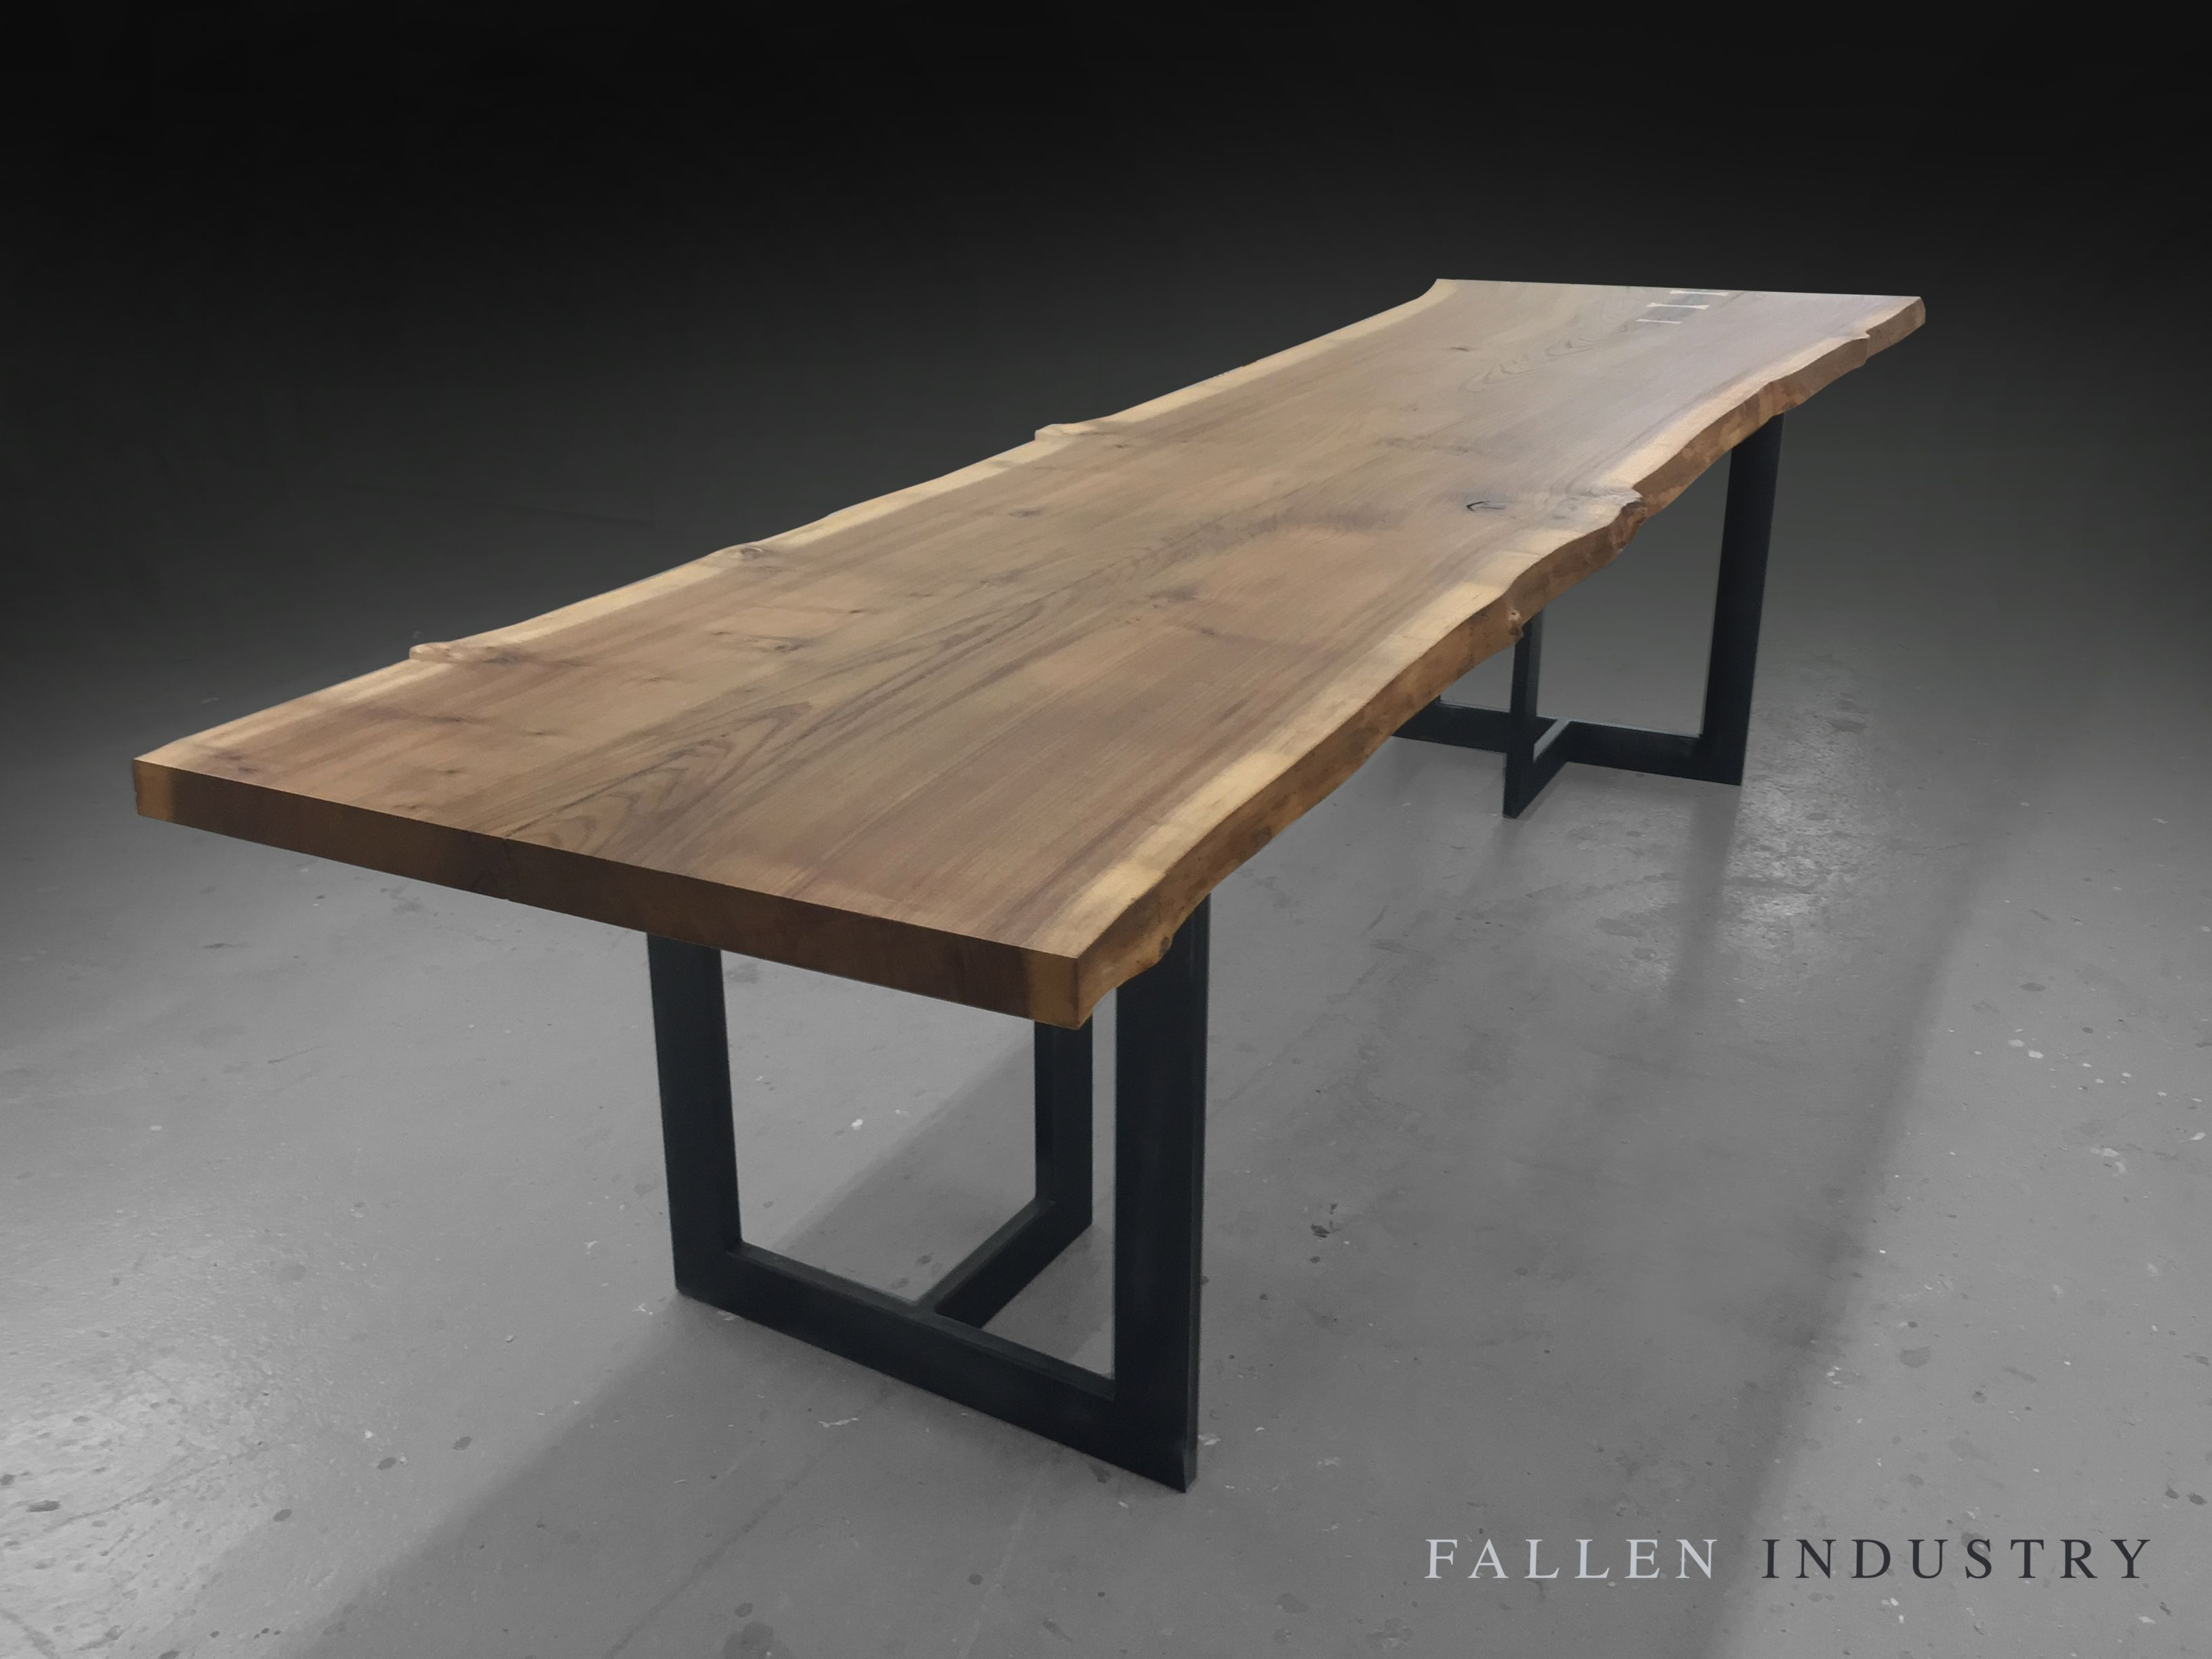 TRIBECA DINING TABLE Live Edge Custom Furniture And Architectural Elements Made From Reclaimed Wood Fallen